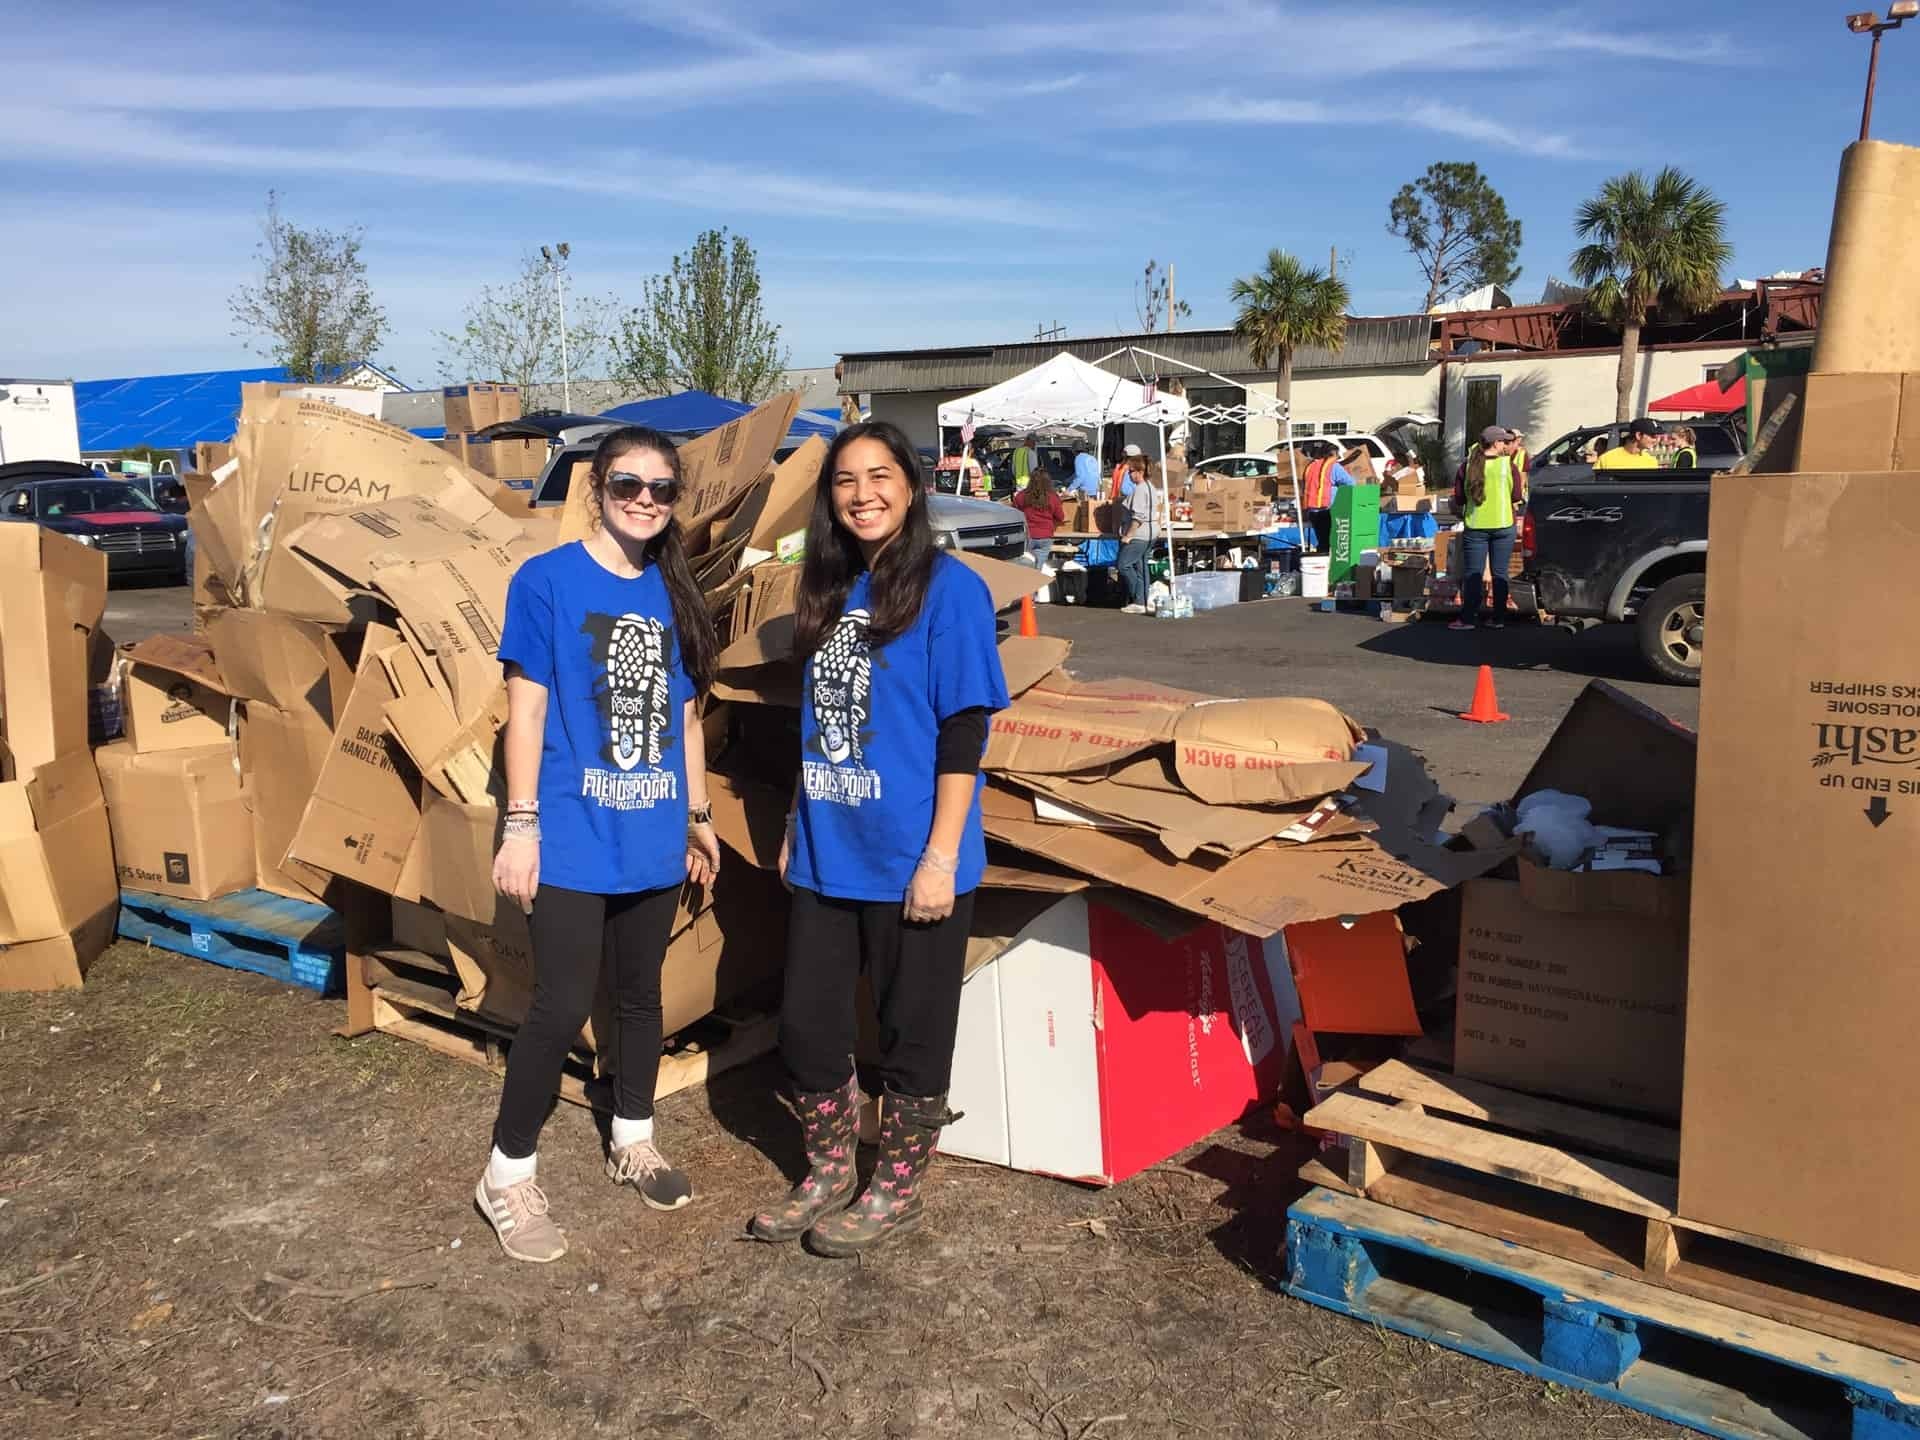 Our youth group returns changed from their recent trip to help those affected by Hurricane Michael